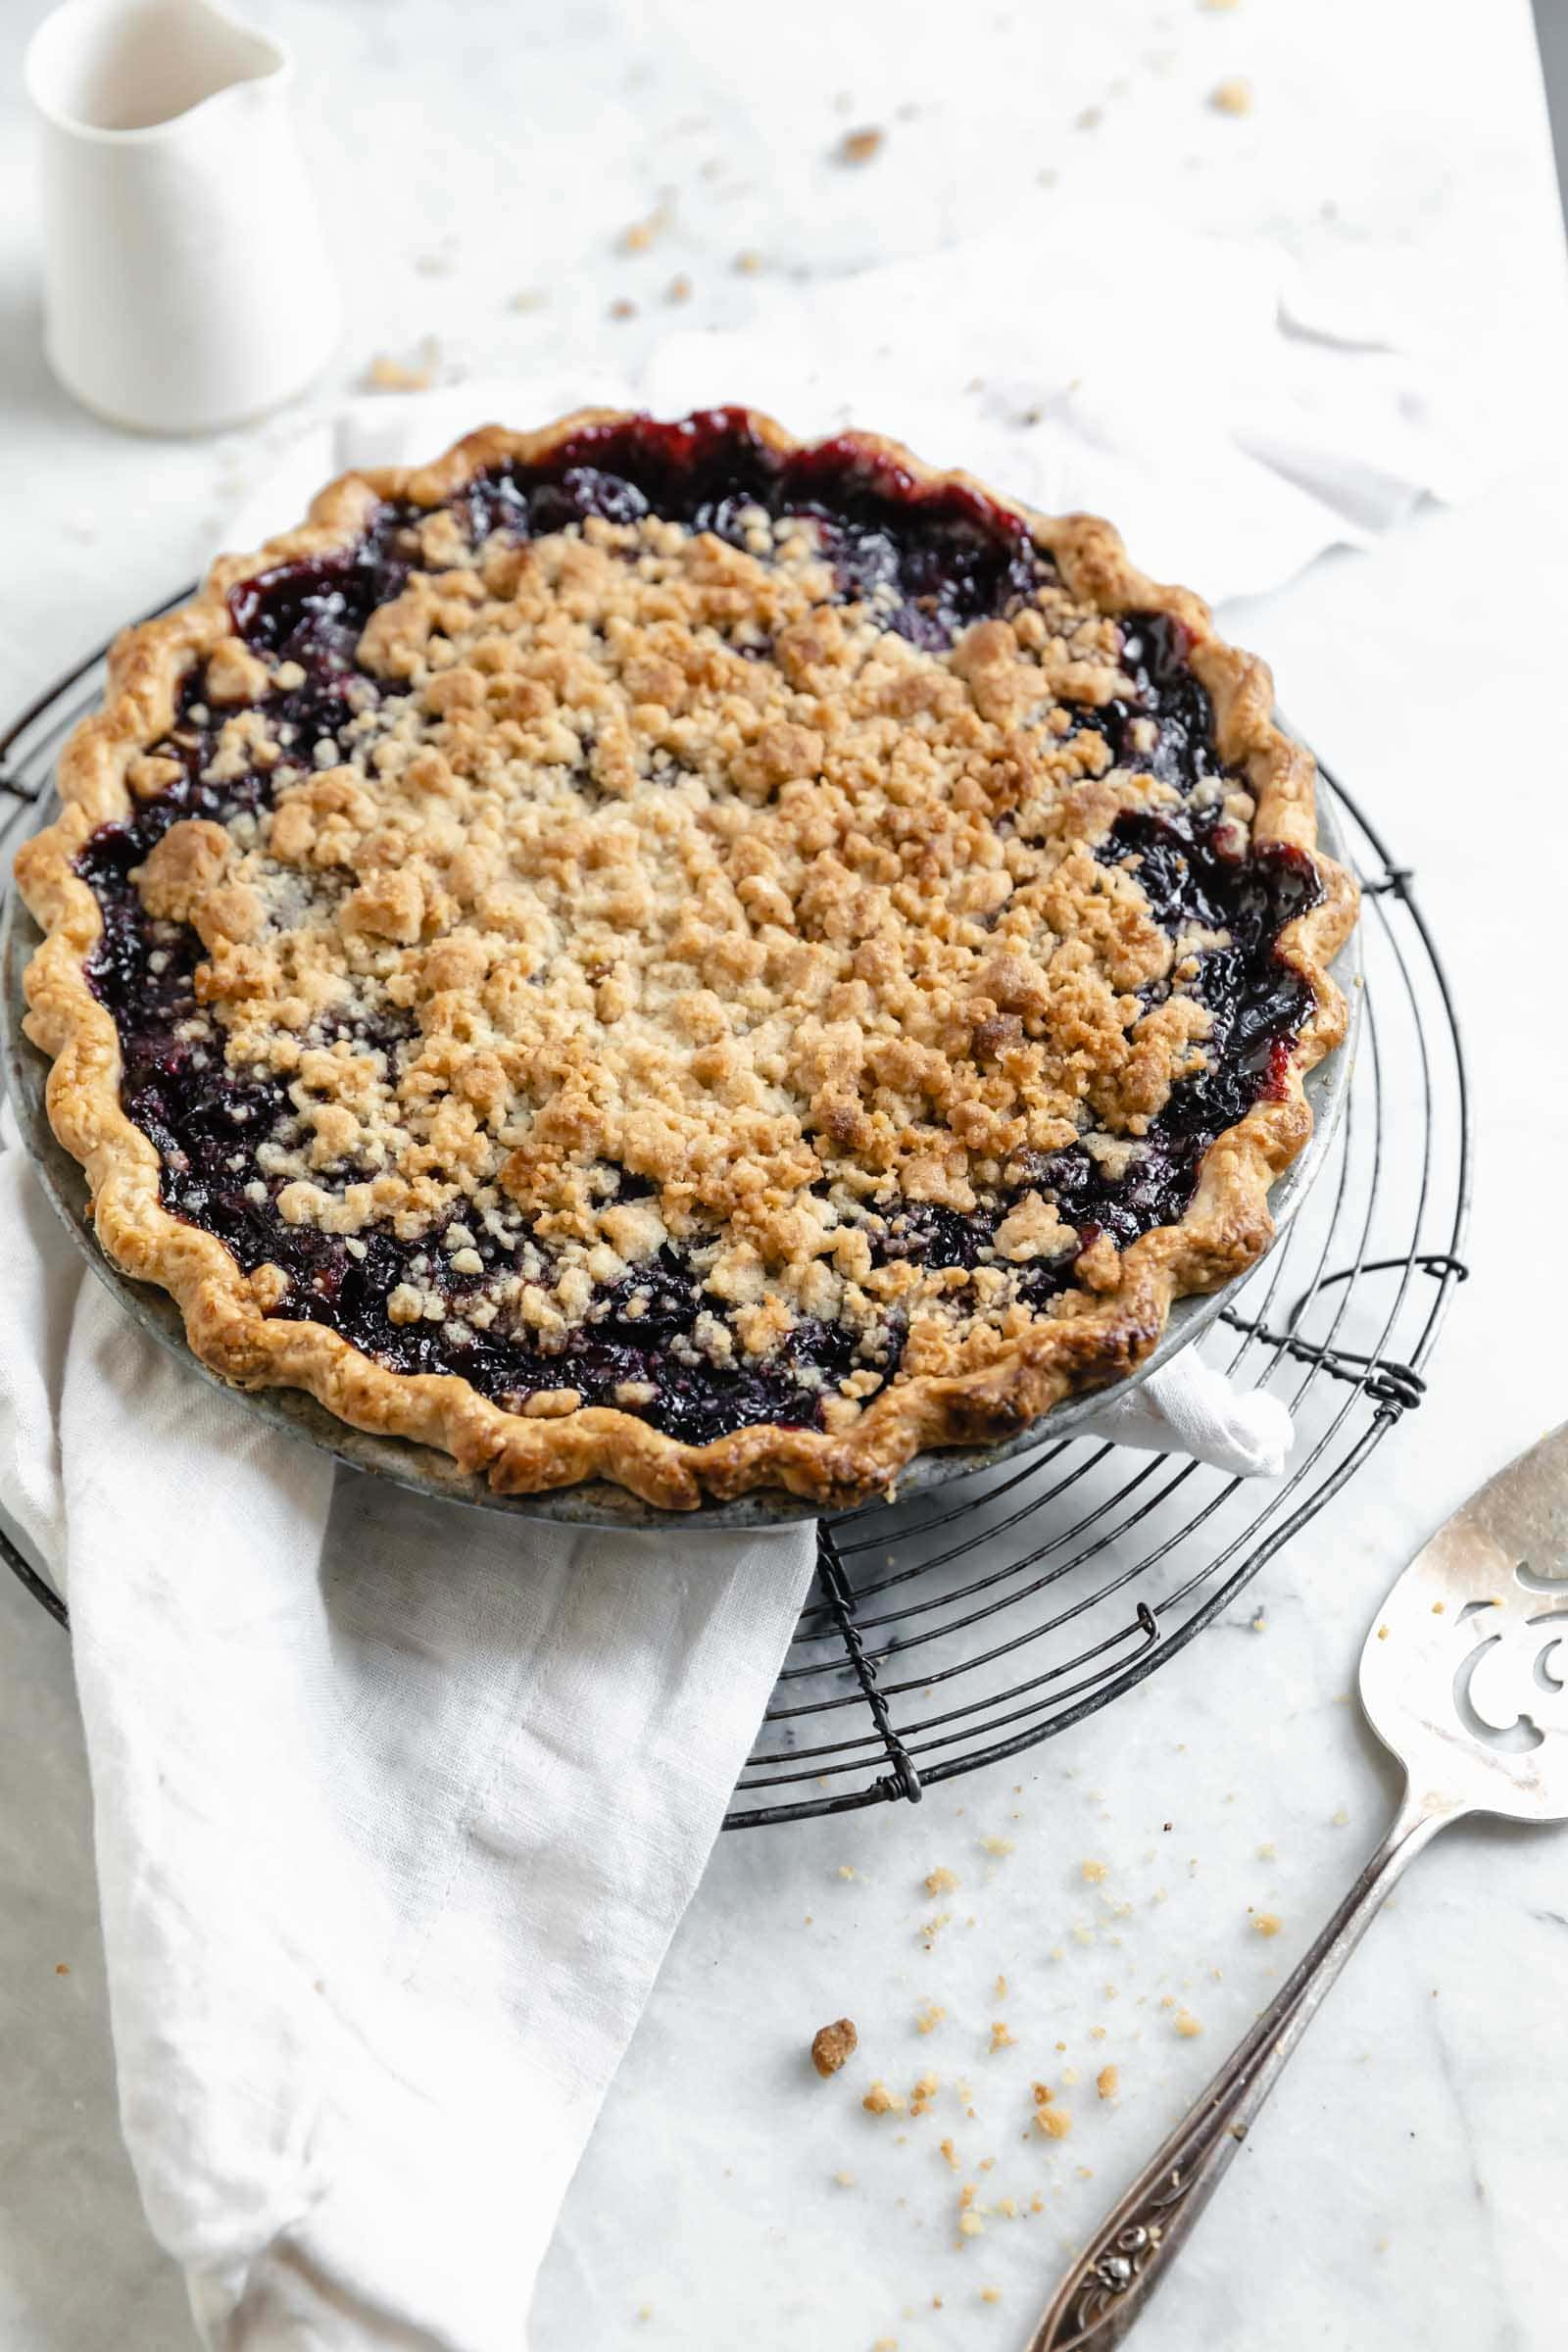 Introudcing our favorite summer pie: Cherry Crumb Pie. A flaky pie crust filled with fresh cherries, and topped with crumble. The perfect cherry pie recipe!